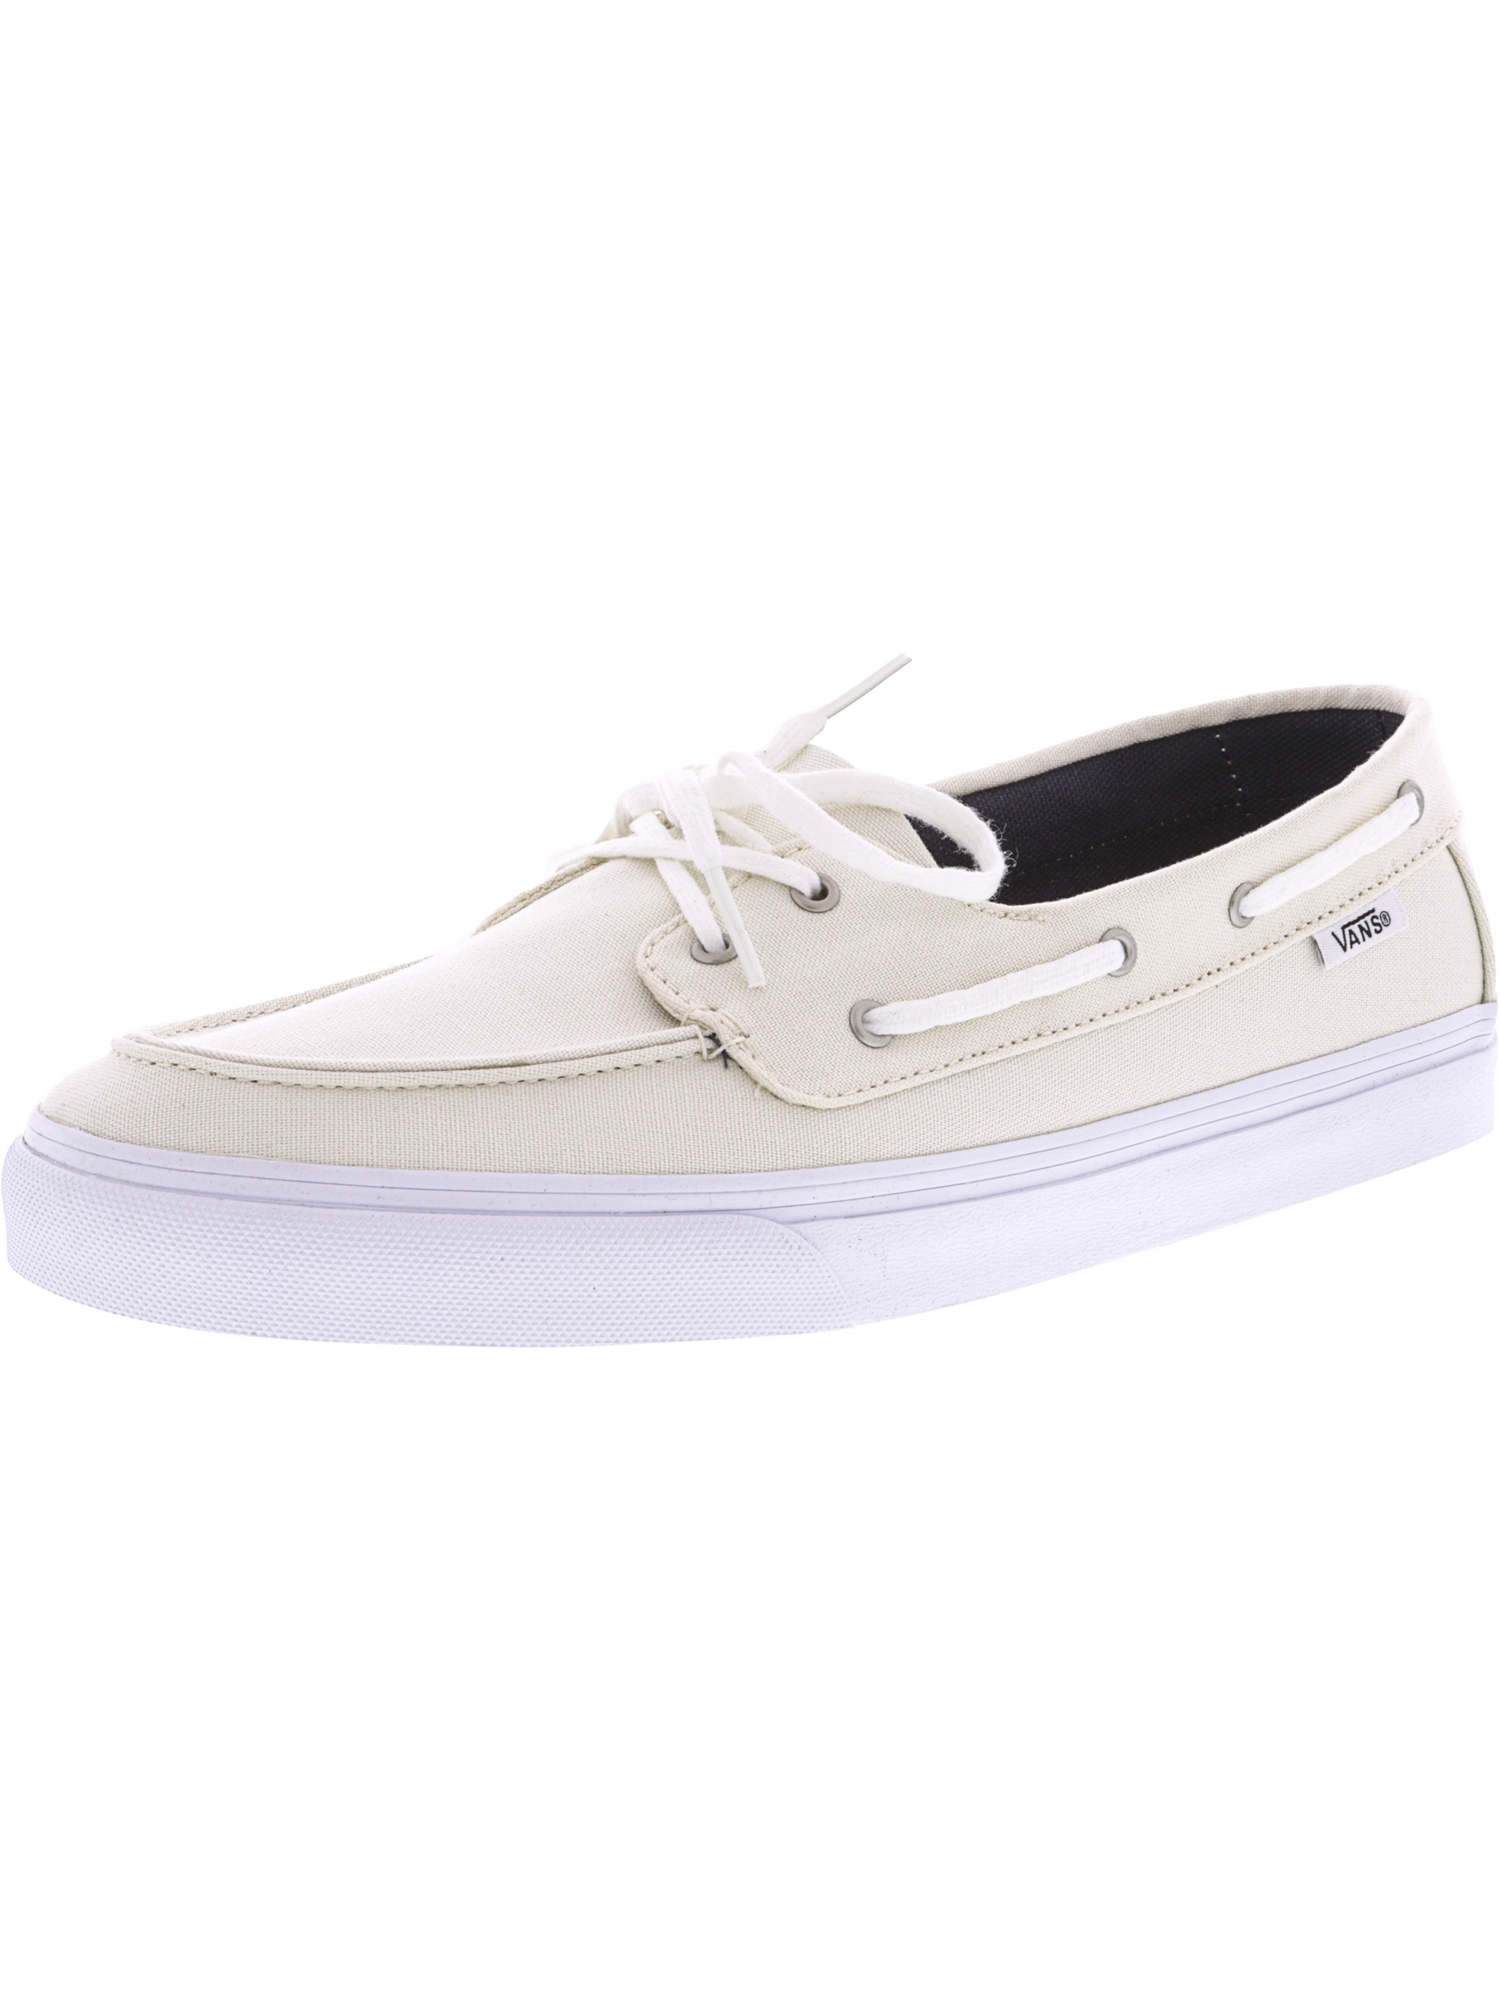 Vans Women's Chauffette Sf Marshmallow Ankle-High Canvas Athletic Boating Shoe - 10.5M